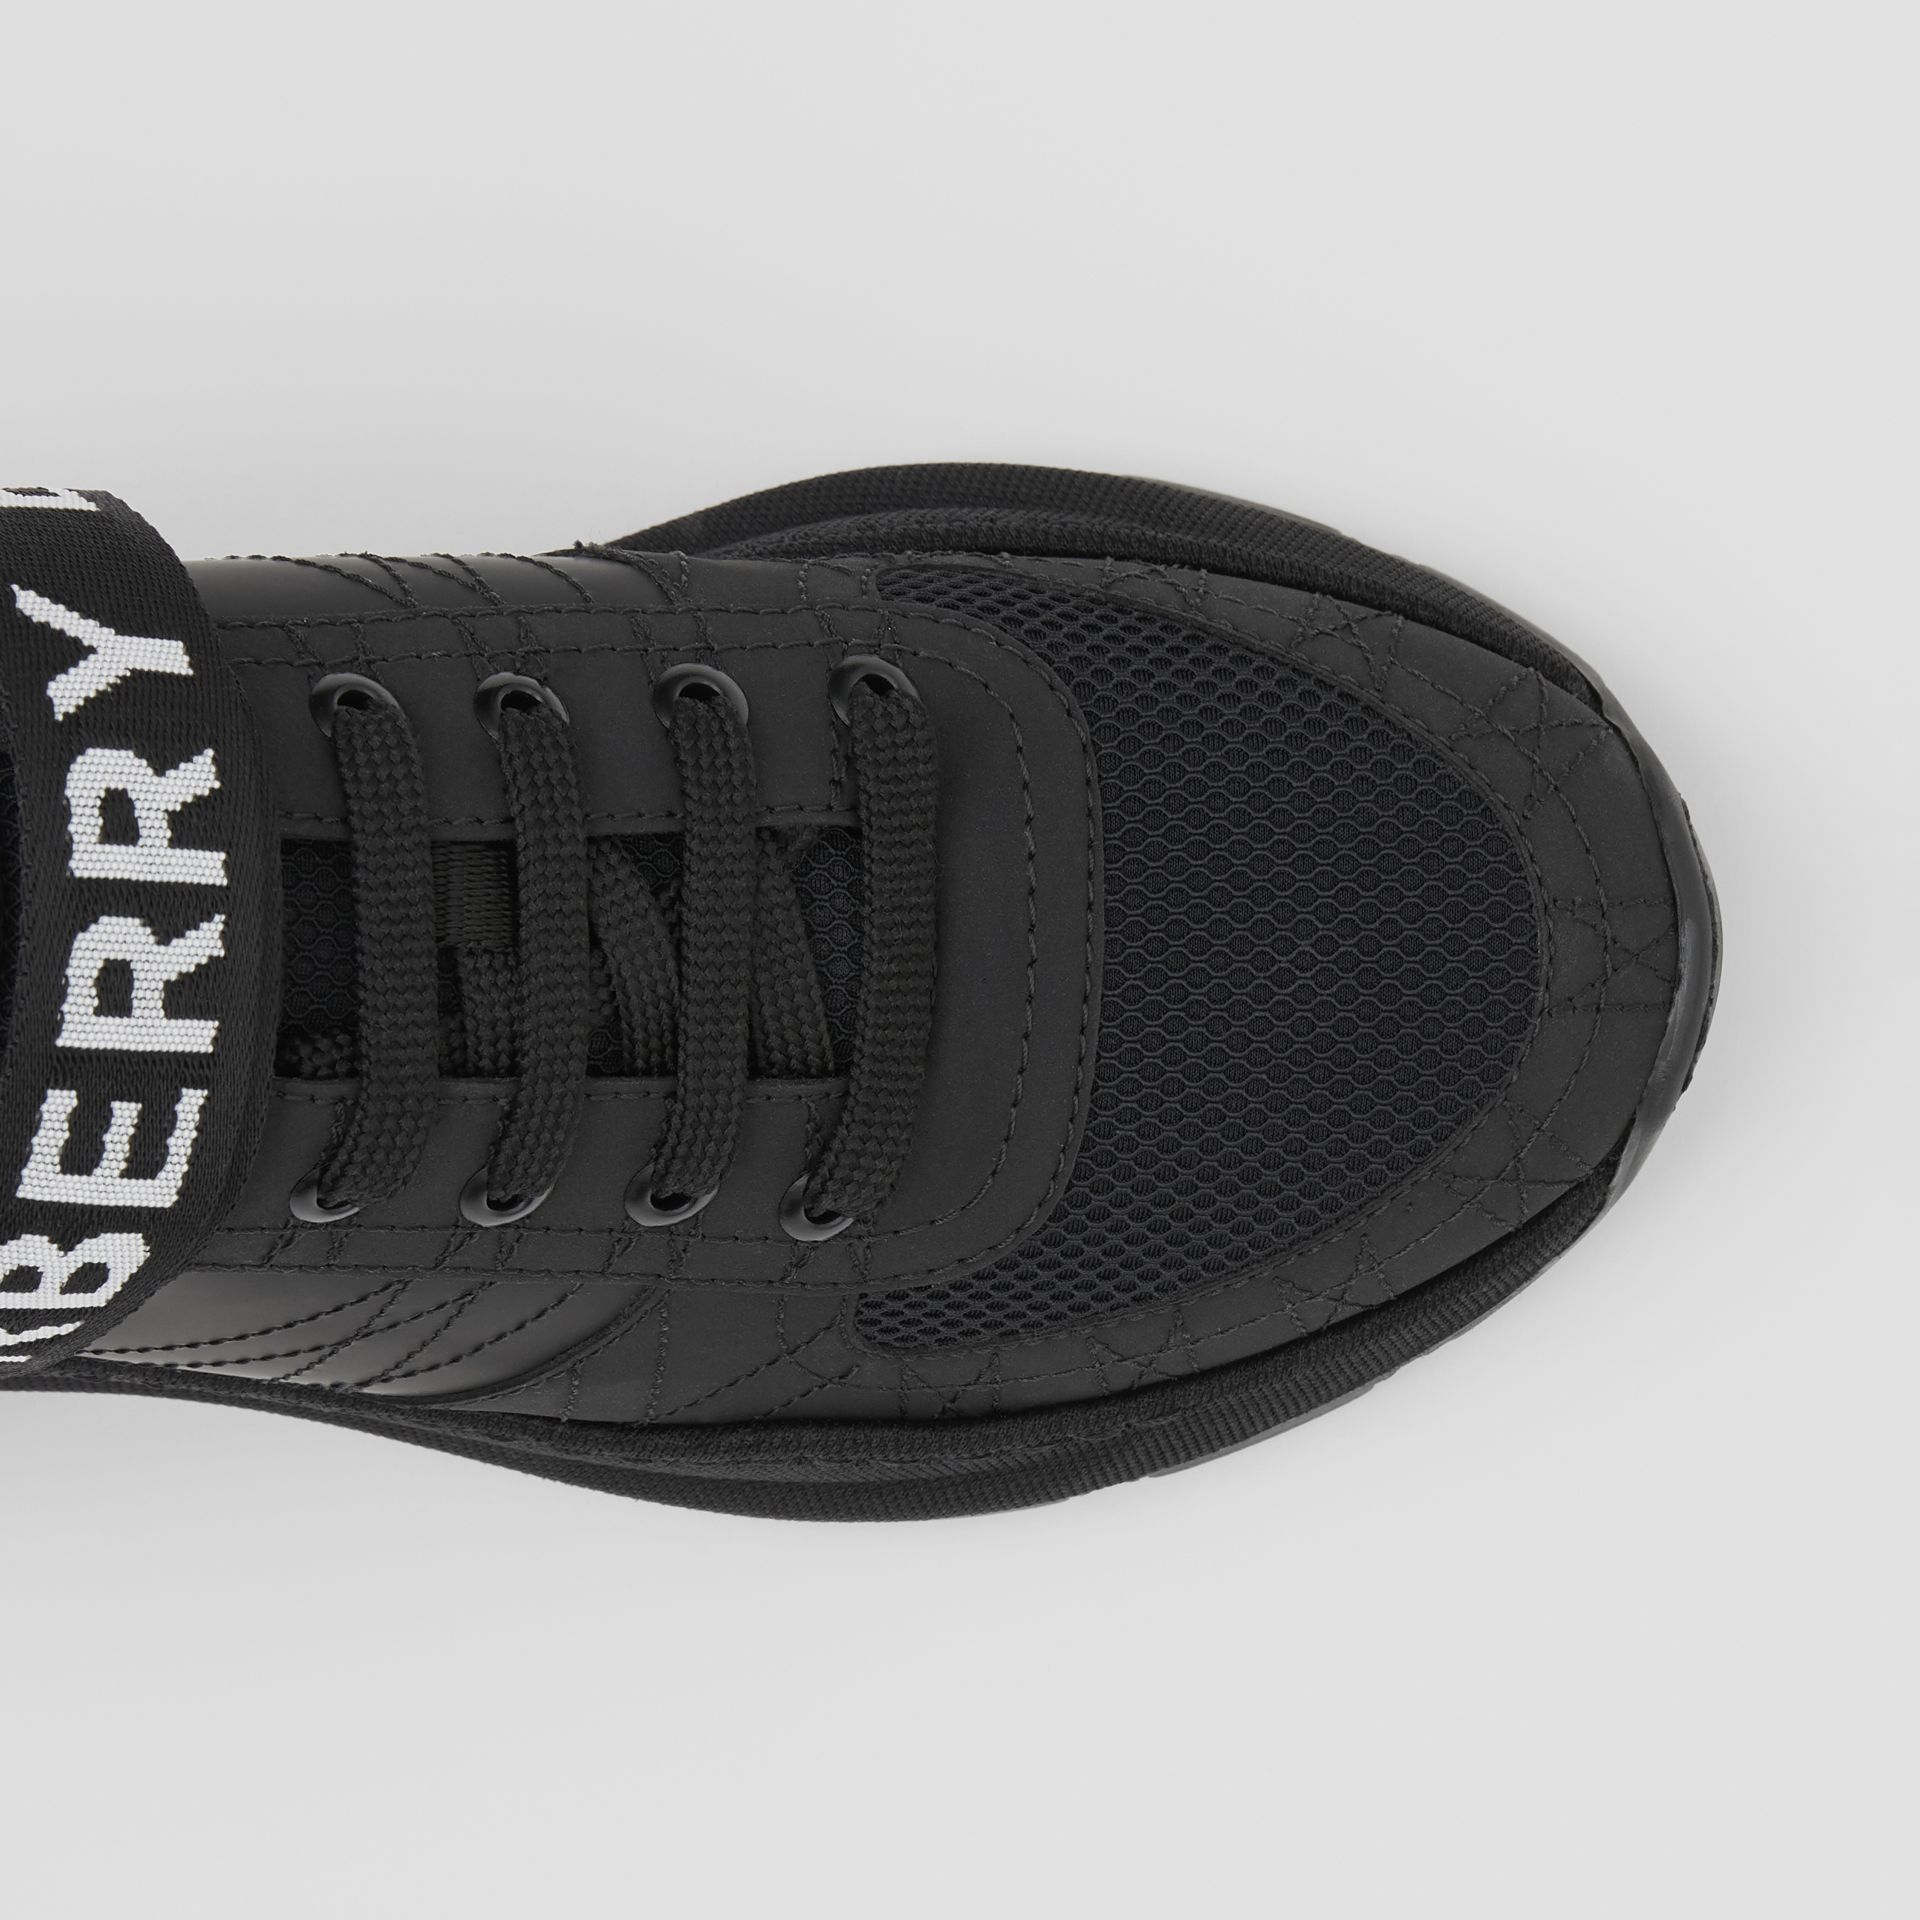 Logo Detail Leather, Nubuck and Mesh Sneakers in Black - Women | Burberry - gallery image 5